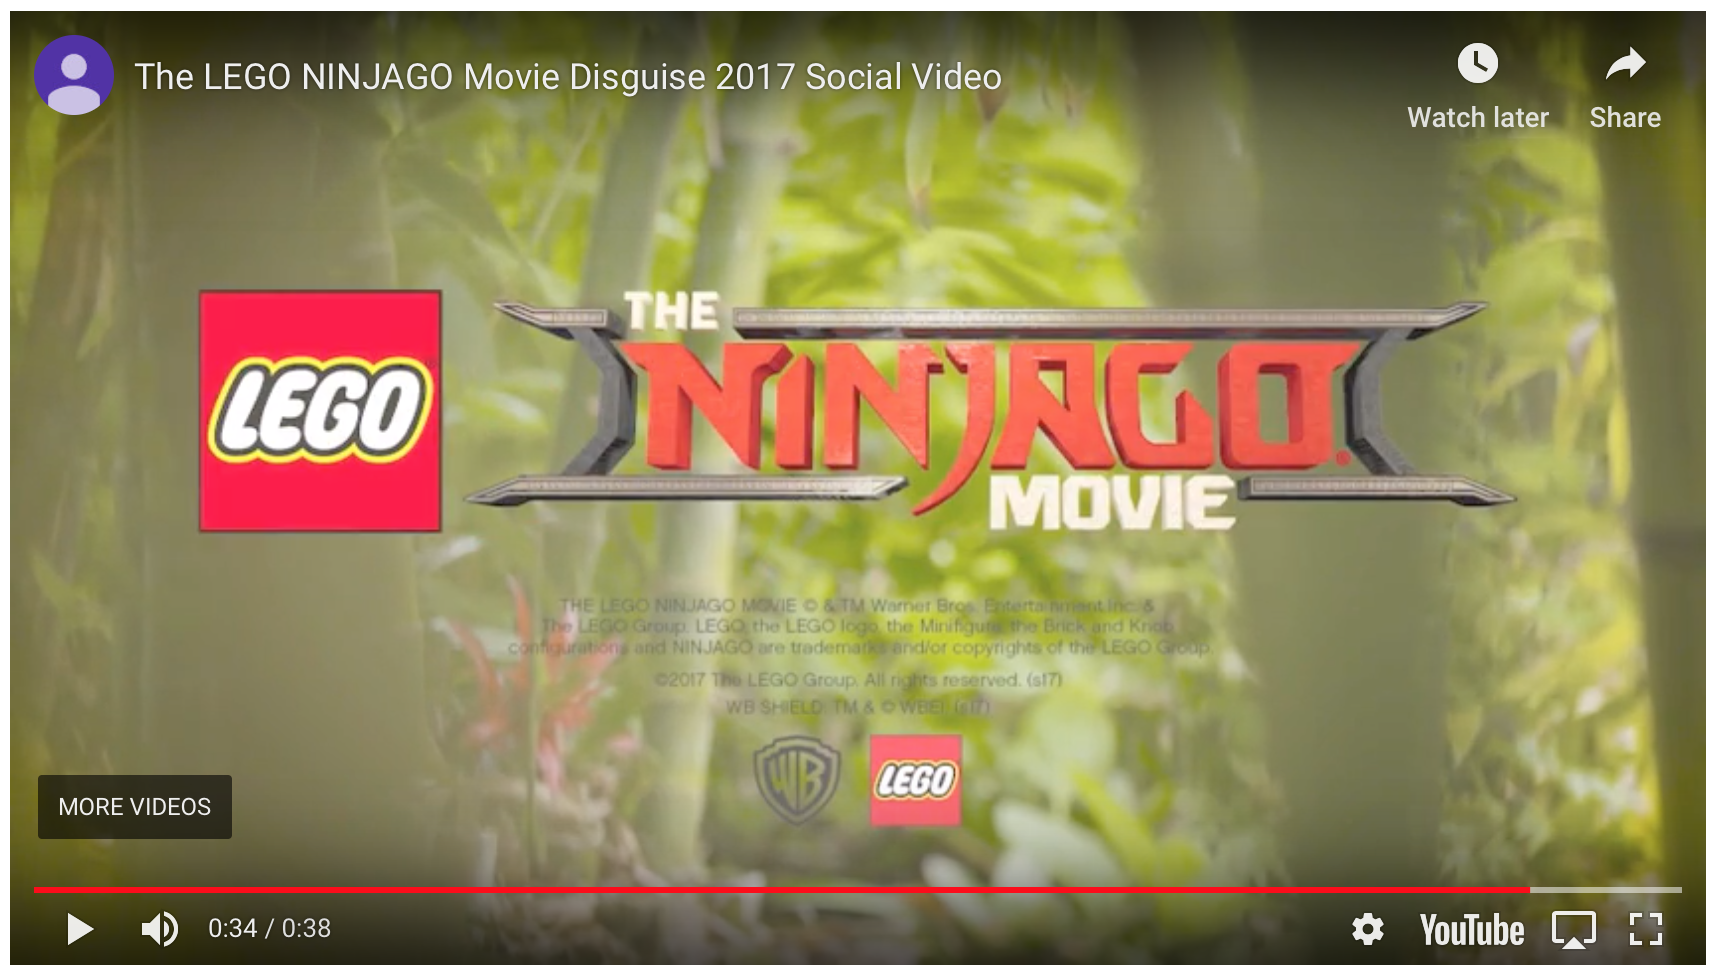 LEGO NINJAGO MOVIE -